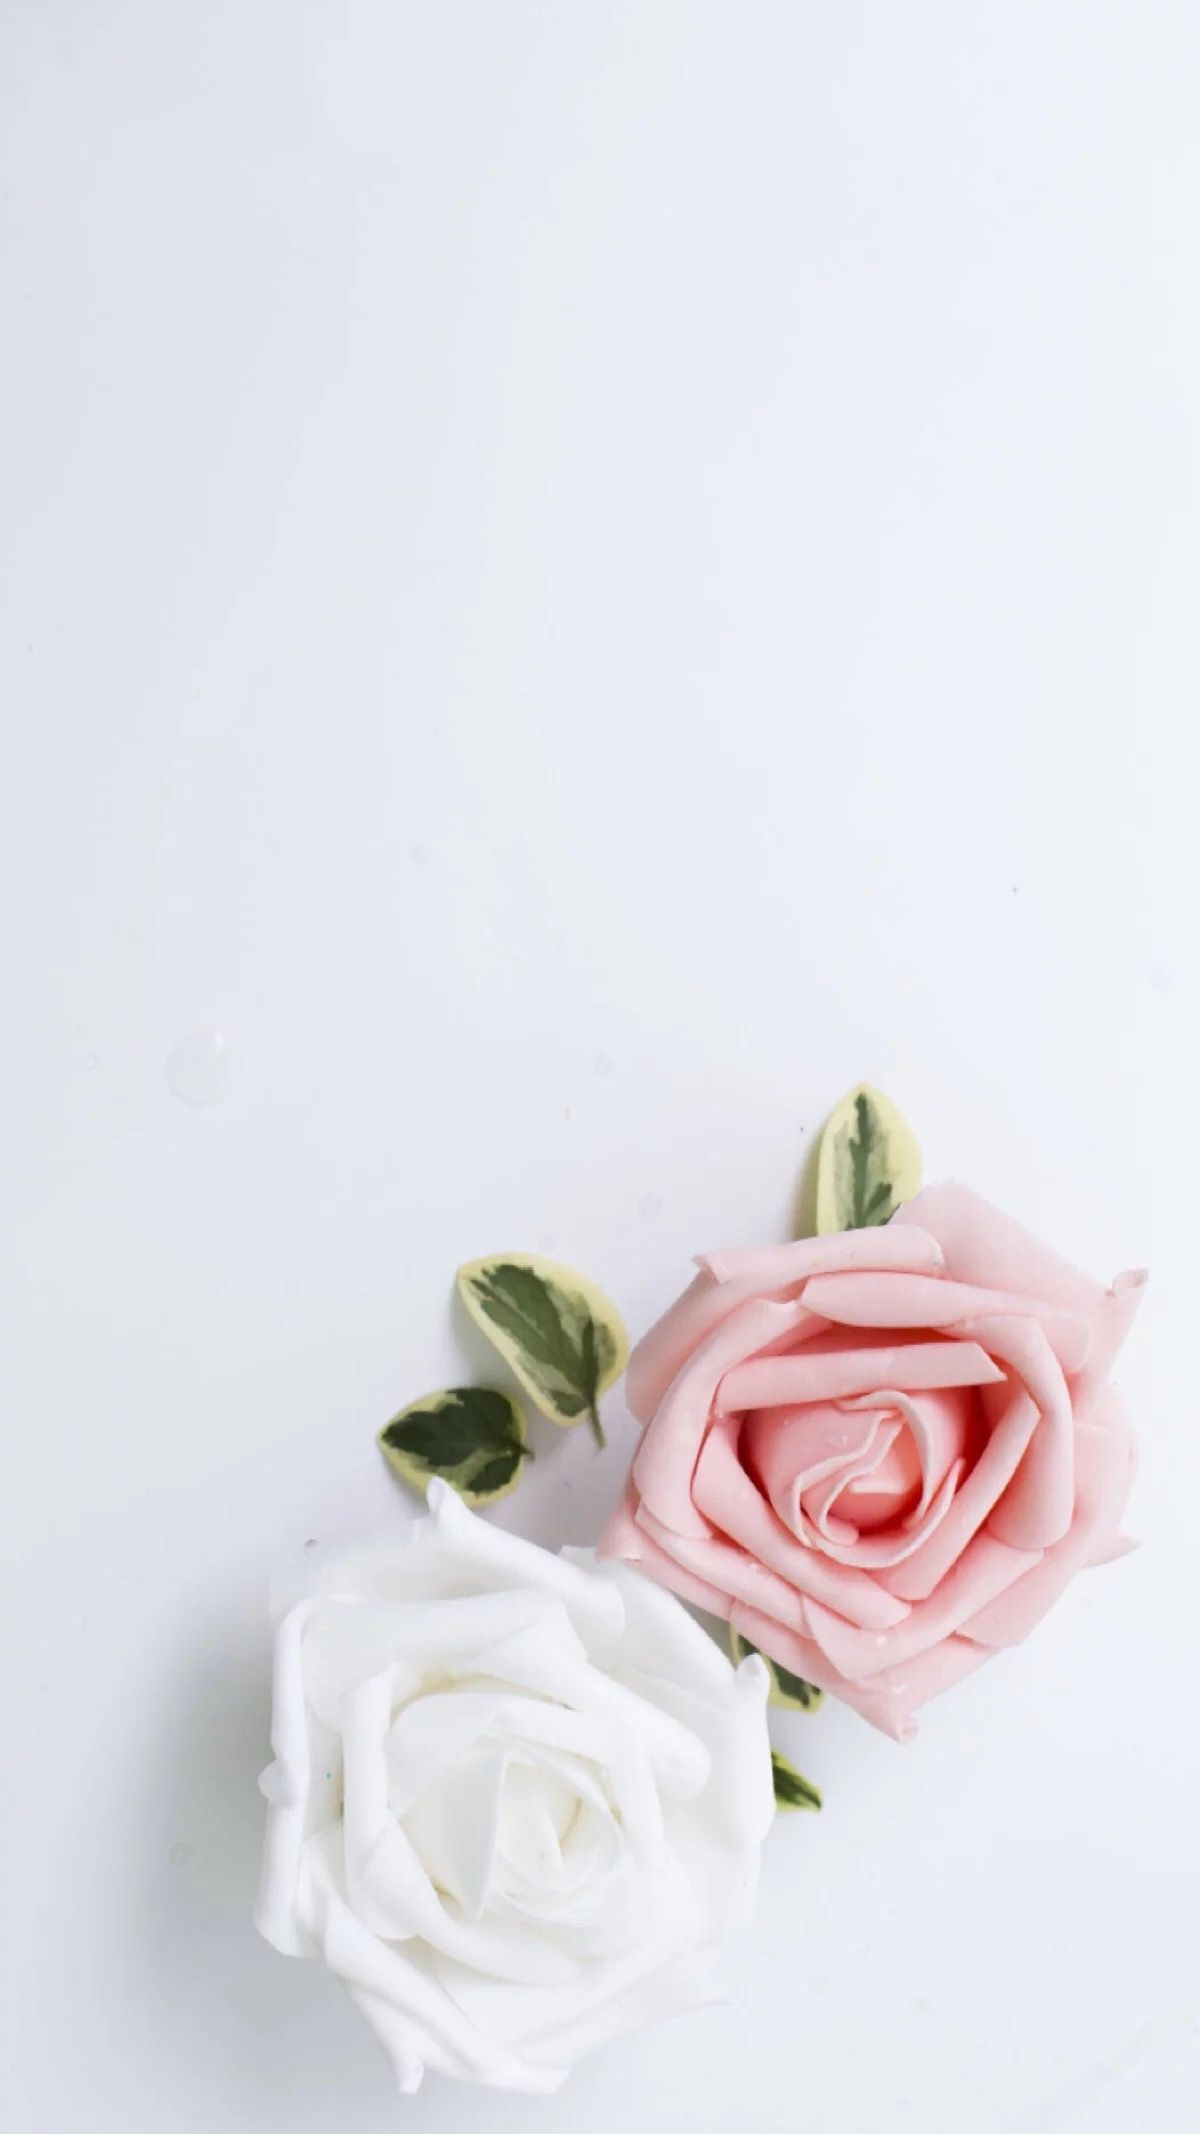 Aesthetic White Wallpapers Top Free Aesthetic White Backgrounds Wallpaperaccess Nature Iphone Wallpaper Rose Wallpaper Flower Wallpaper